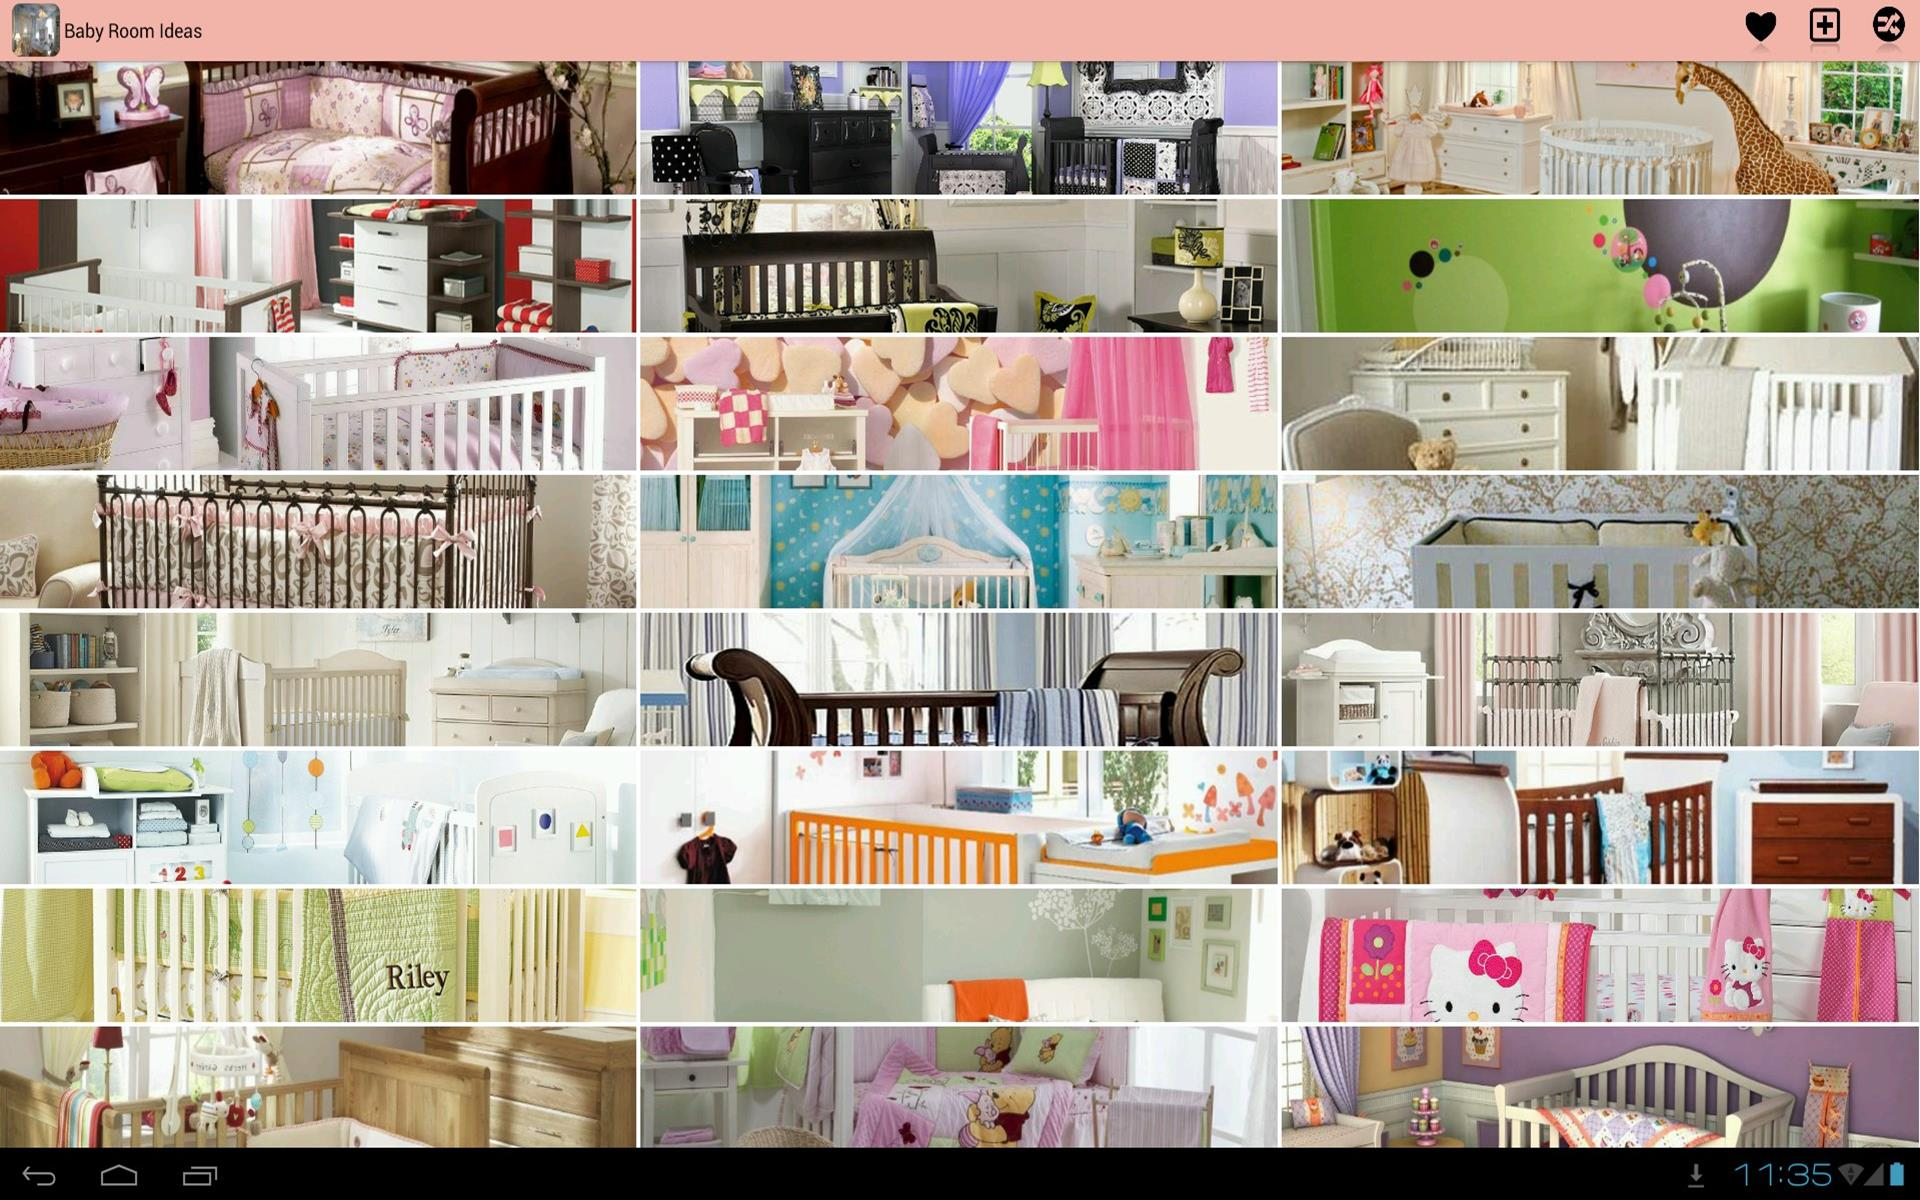 Baby room decor ideas appstore for android for Room design ideas app